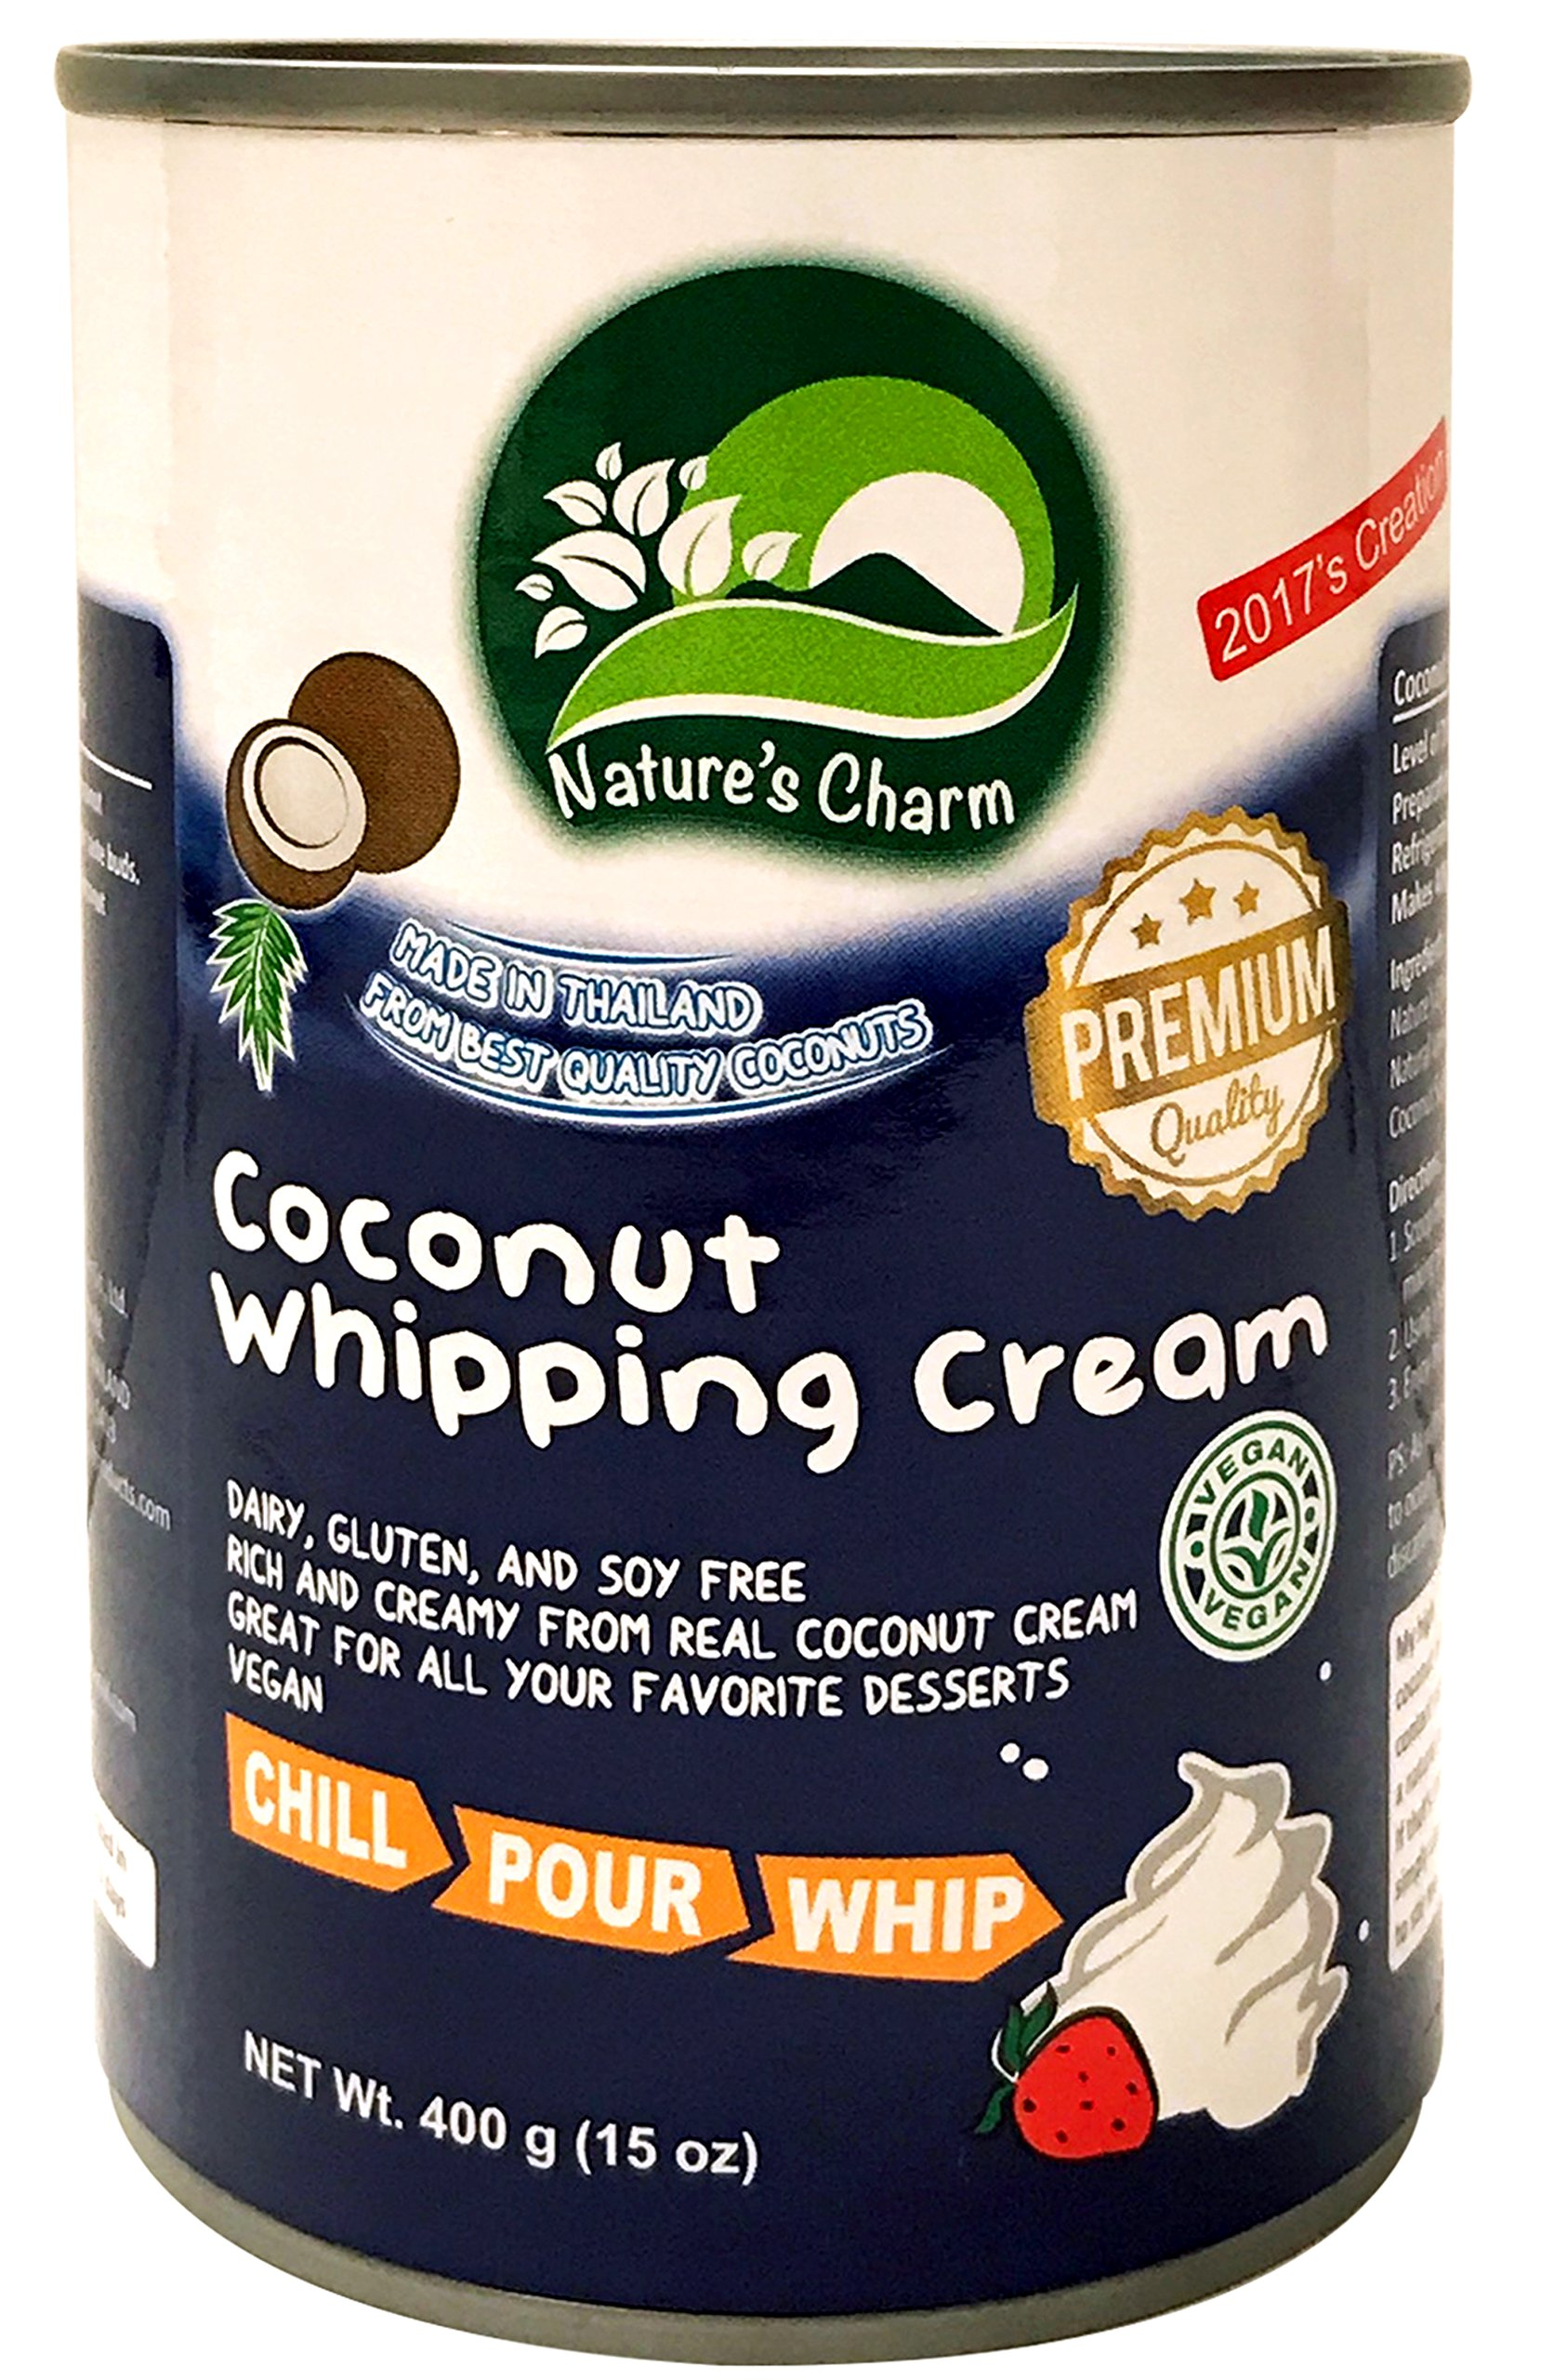 Nature's Charm Coconut Whipping Cream (6 pack)